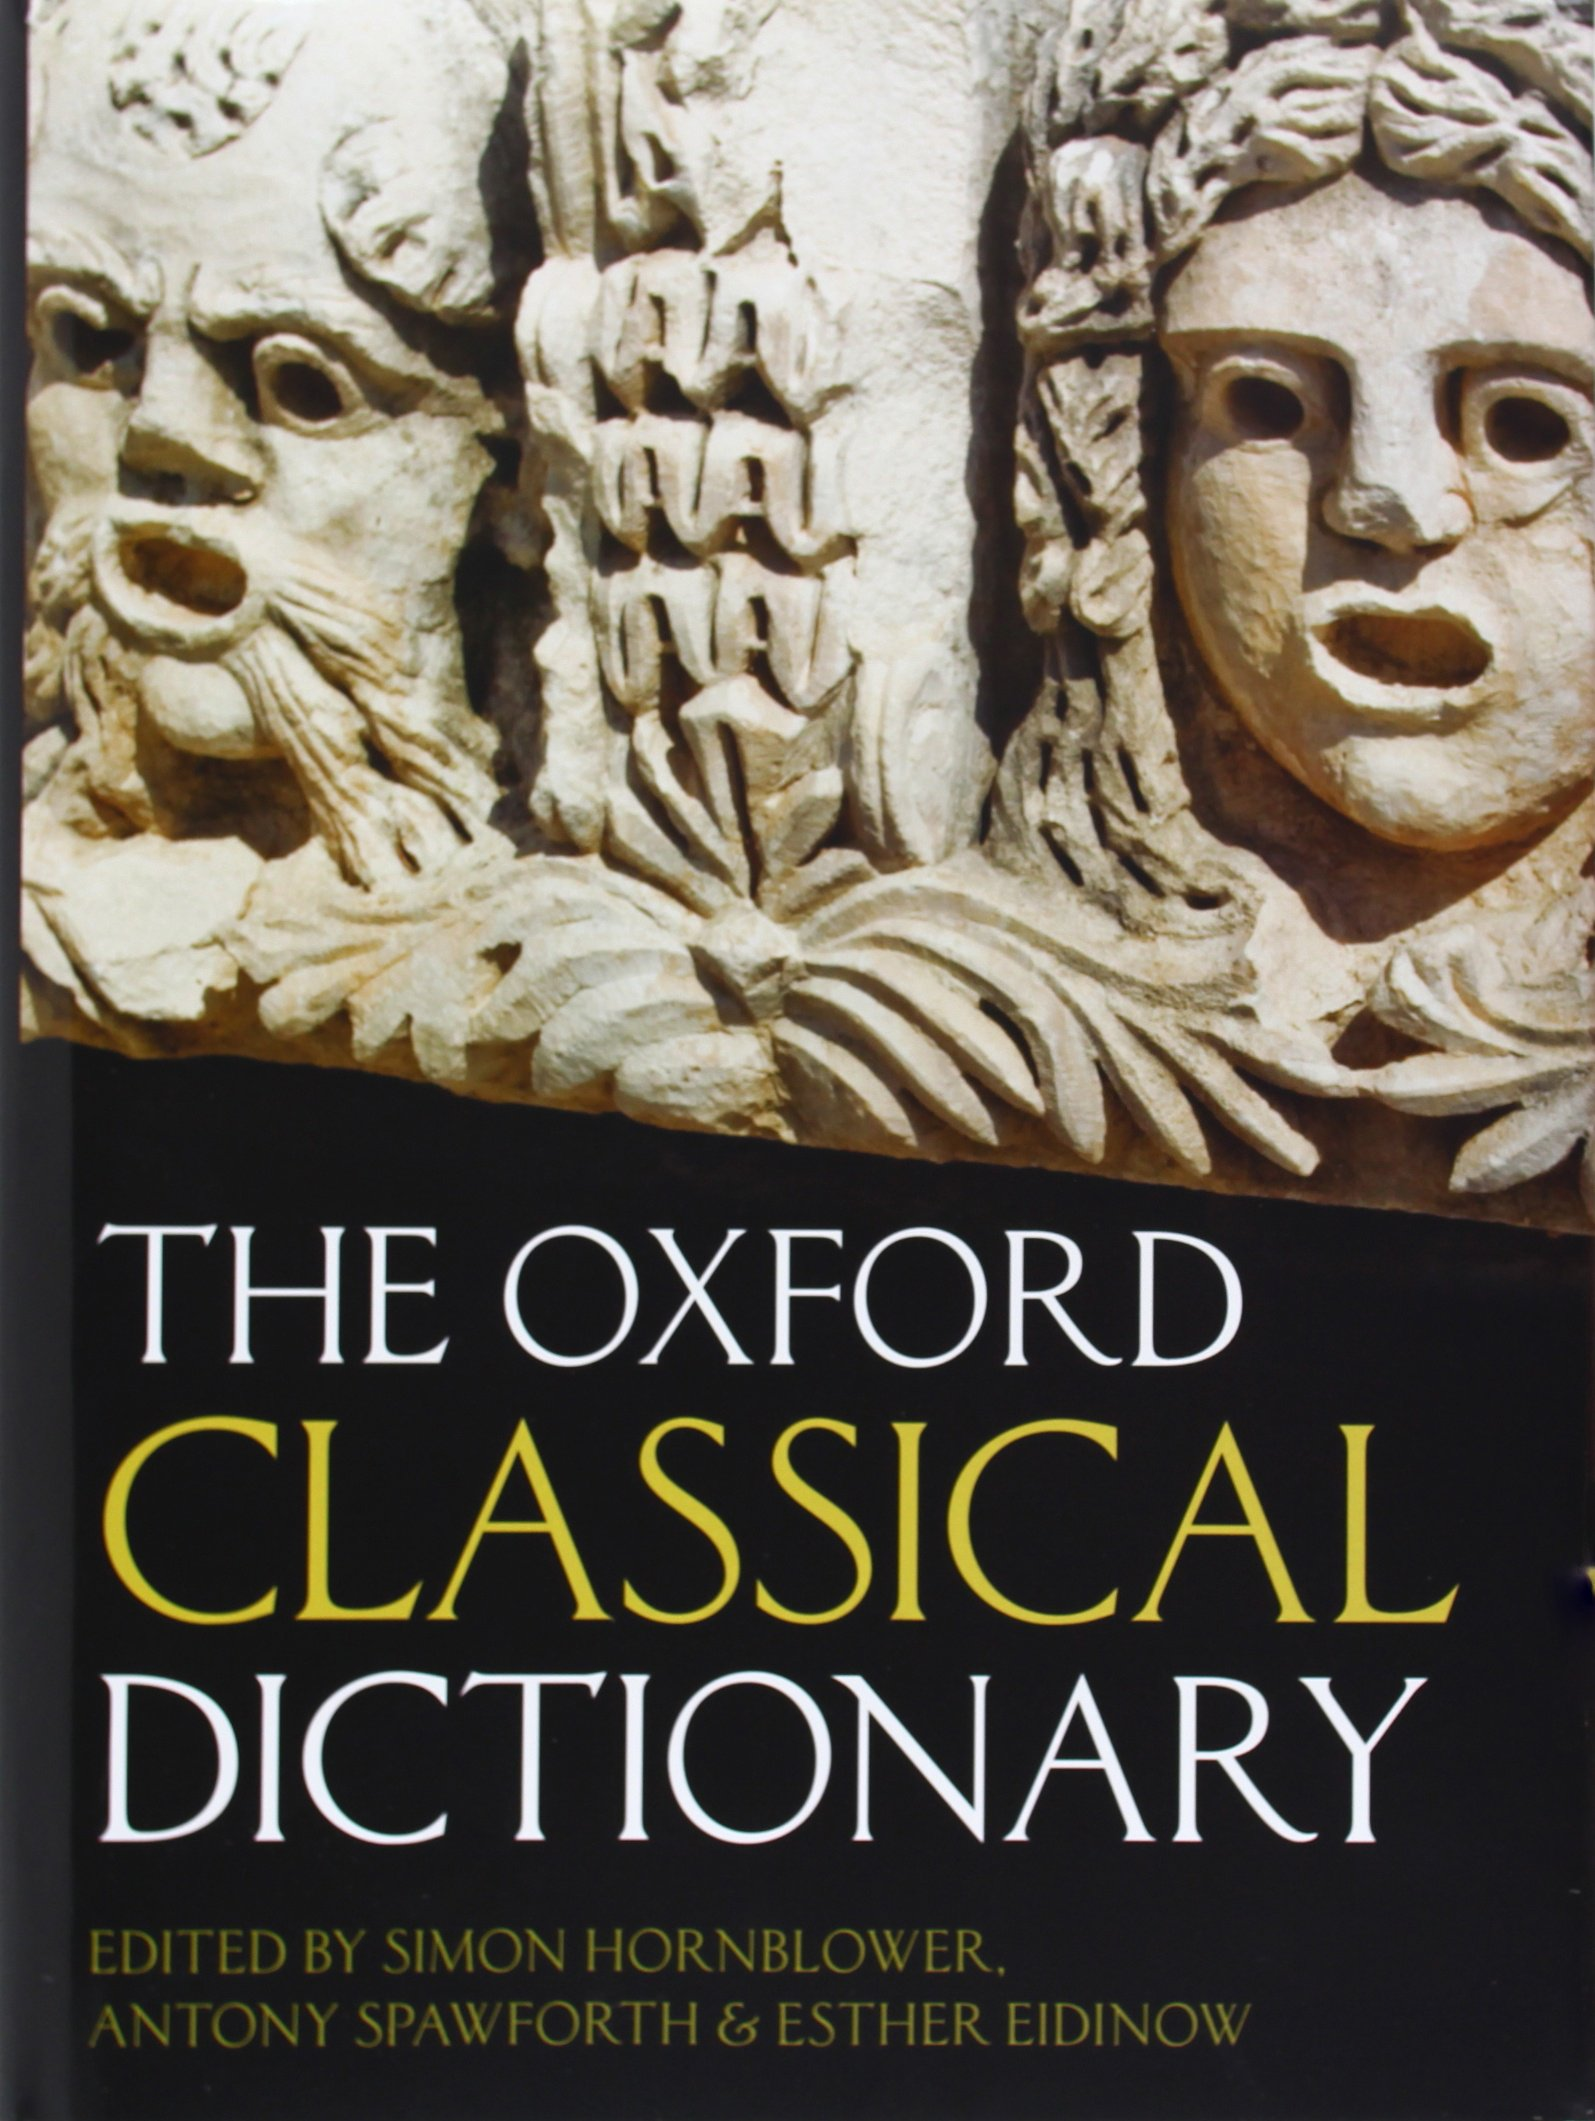 Oxford Classical Dictionary Cover Art